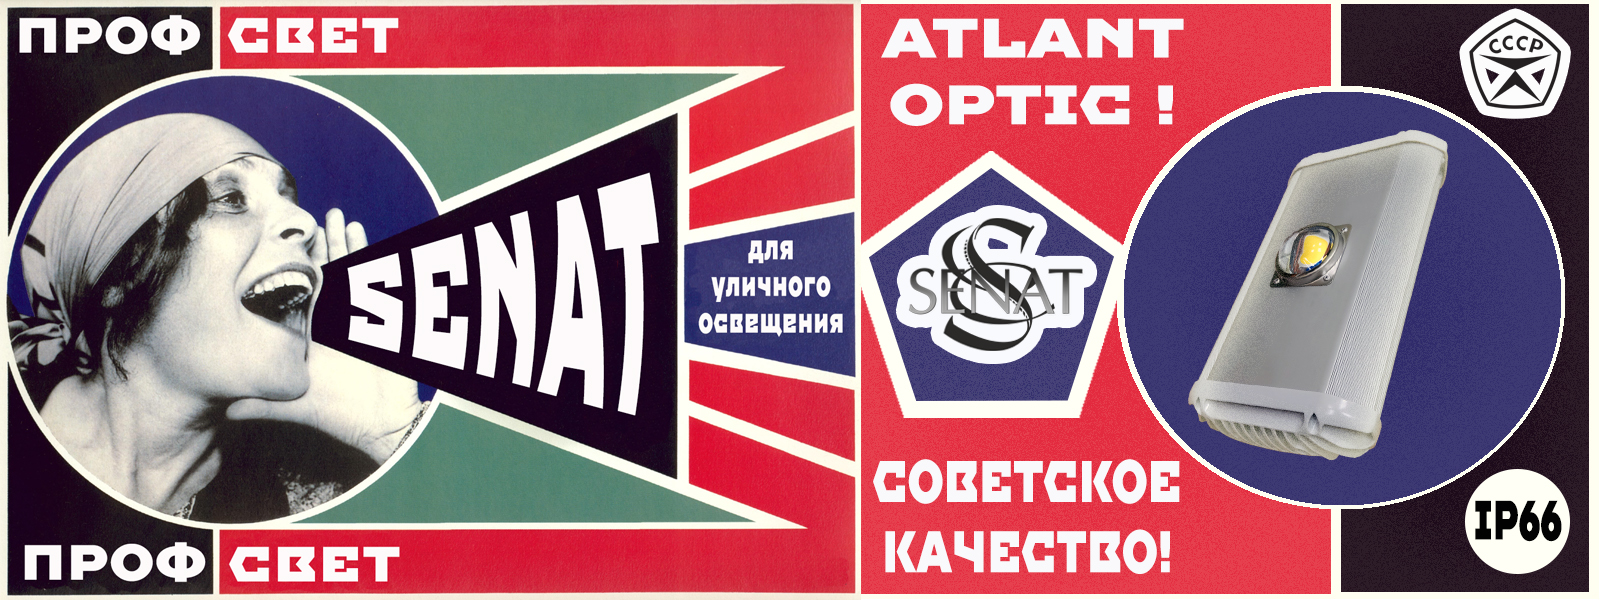 SENAT Atlant Optic